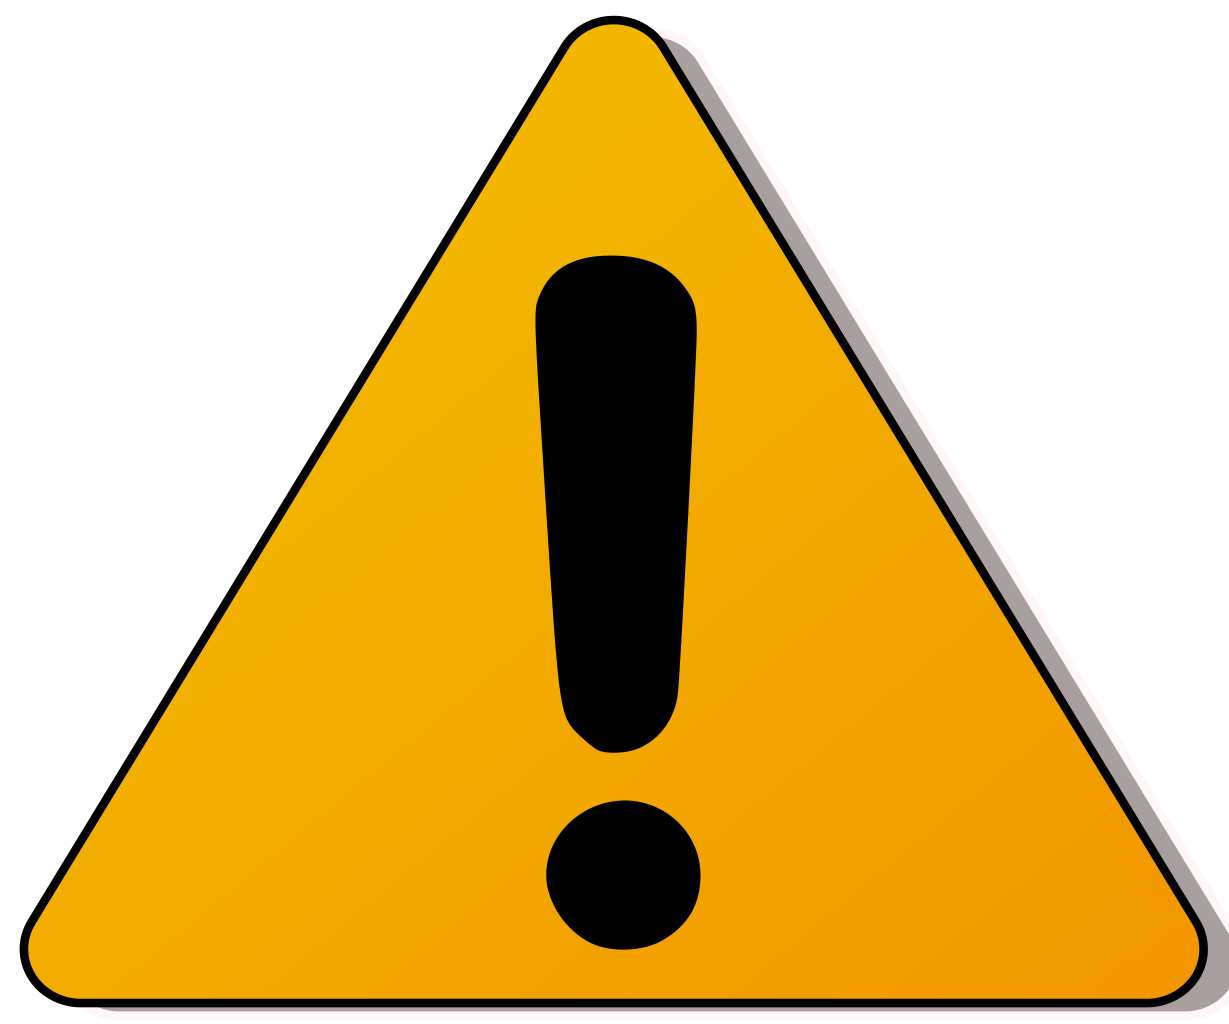 Caution clipart emoji. File sign used on